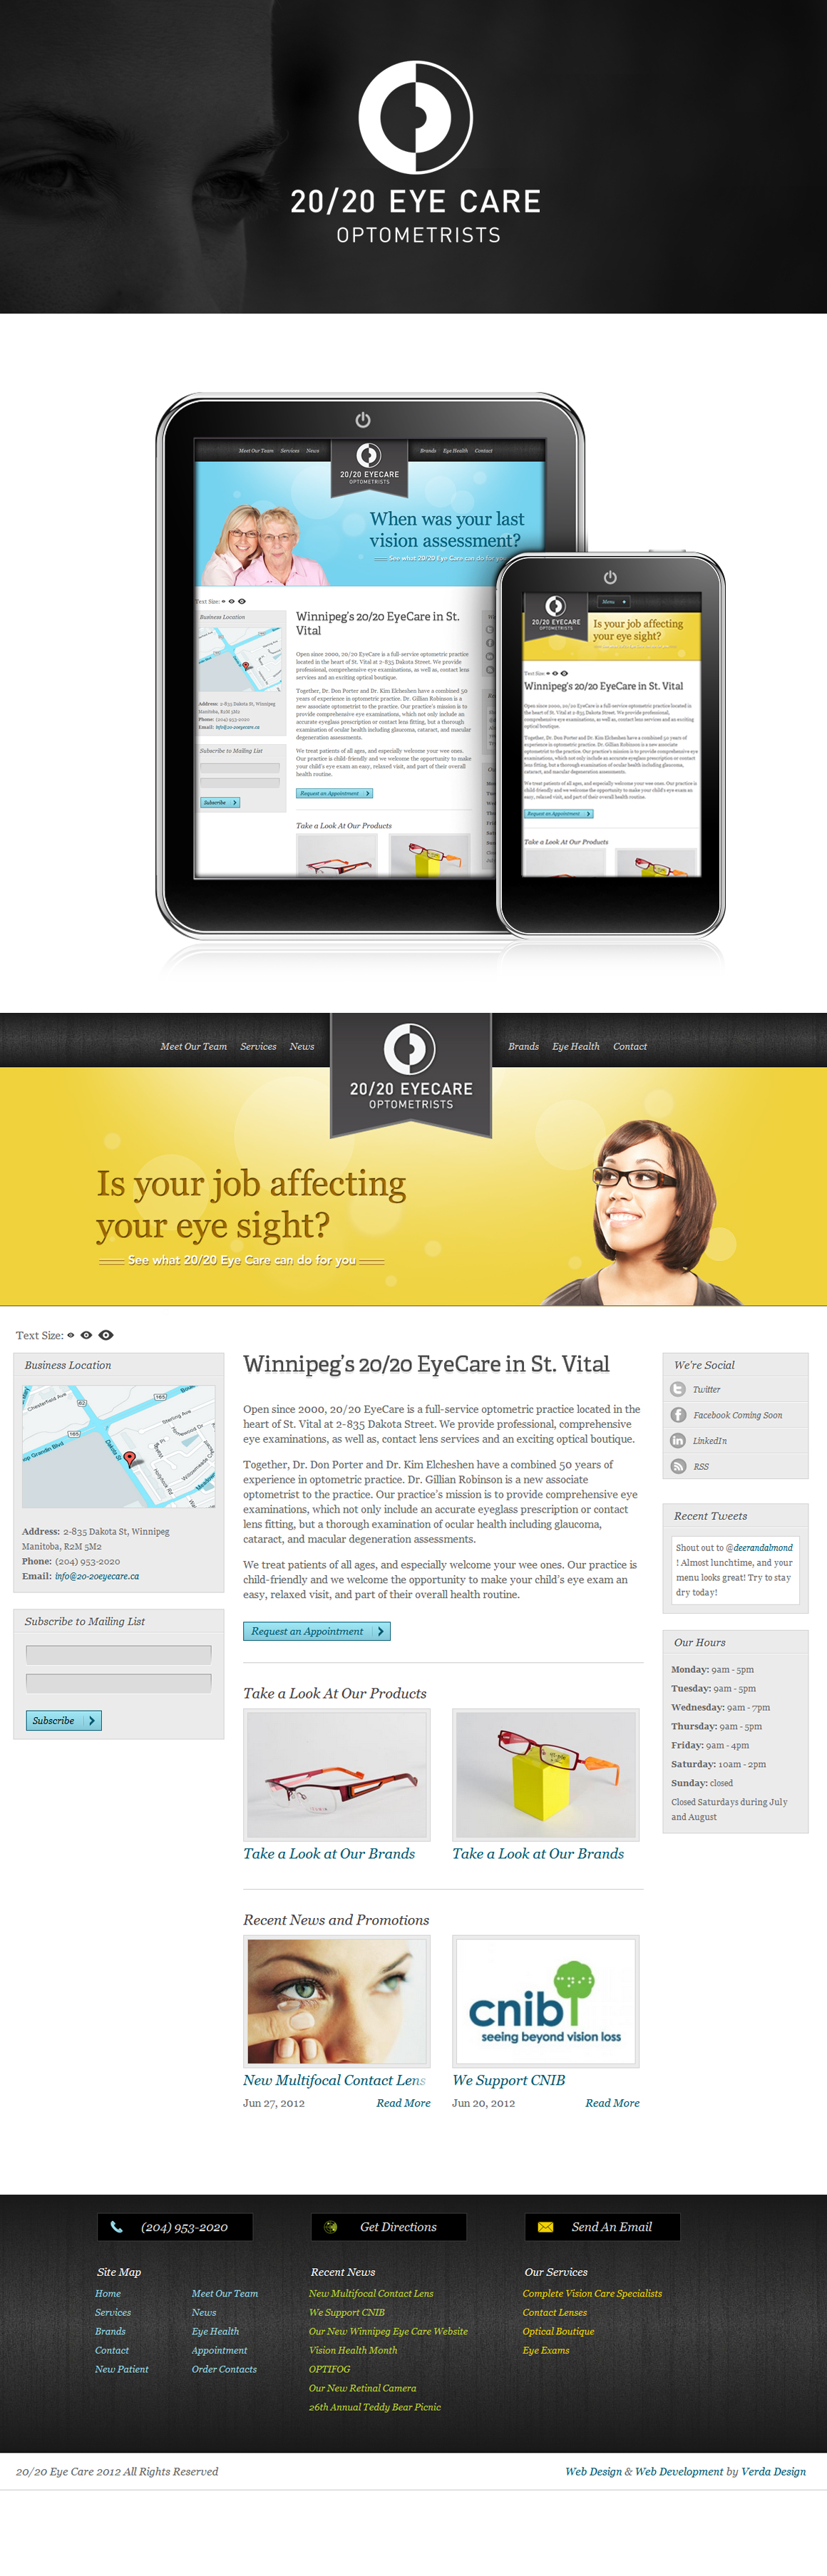 web-design-winnipeg-verda-1.jpg